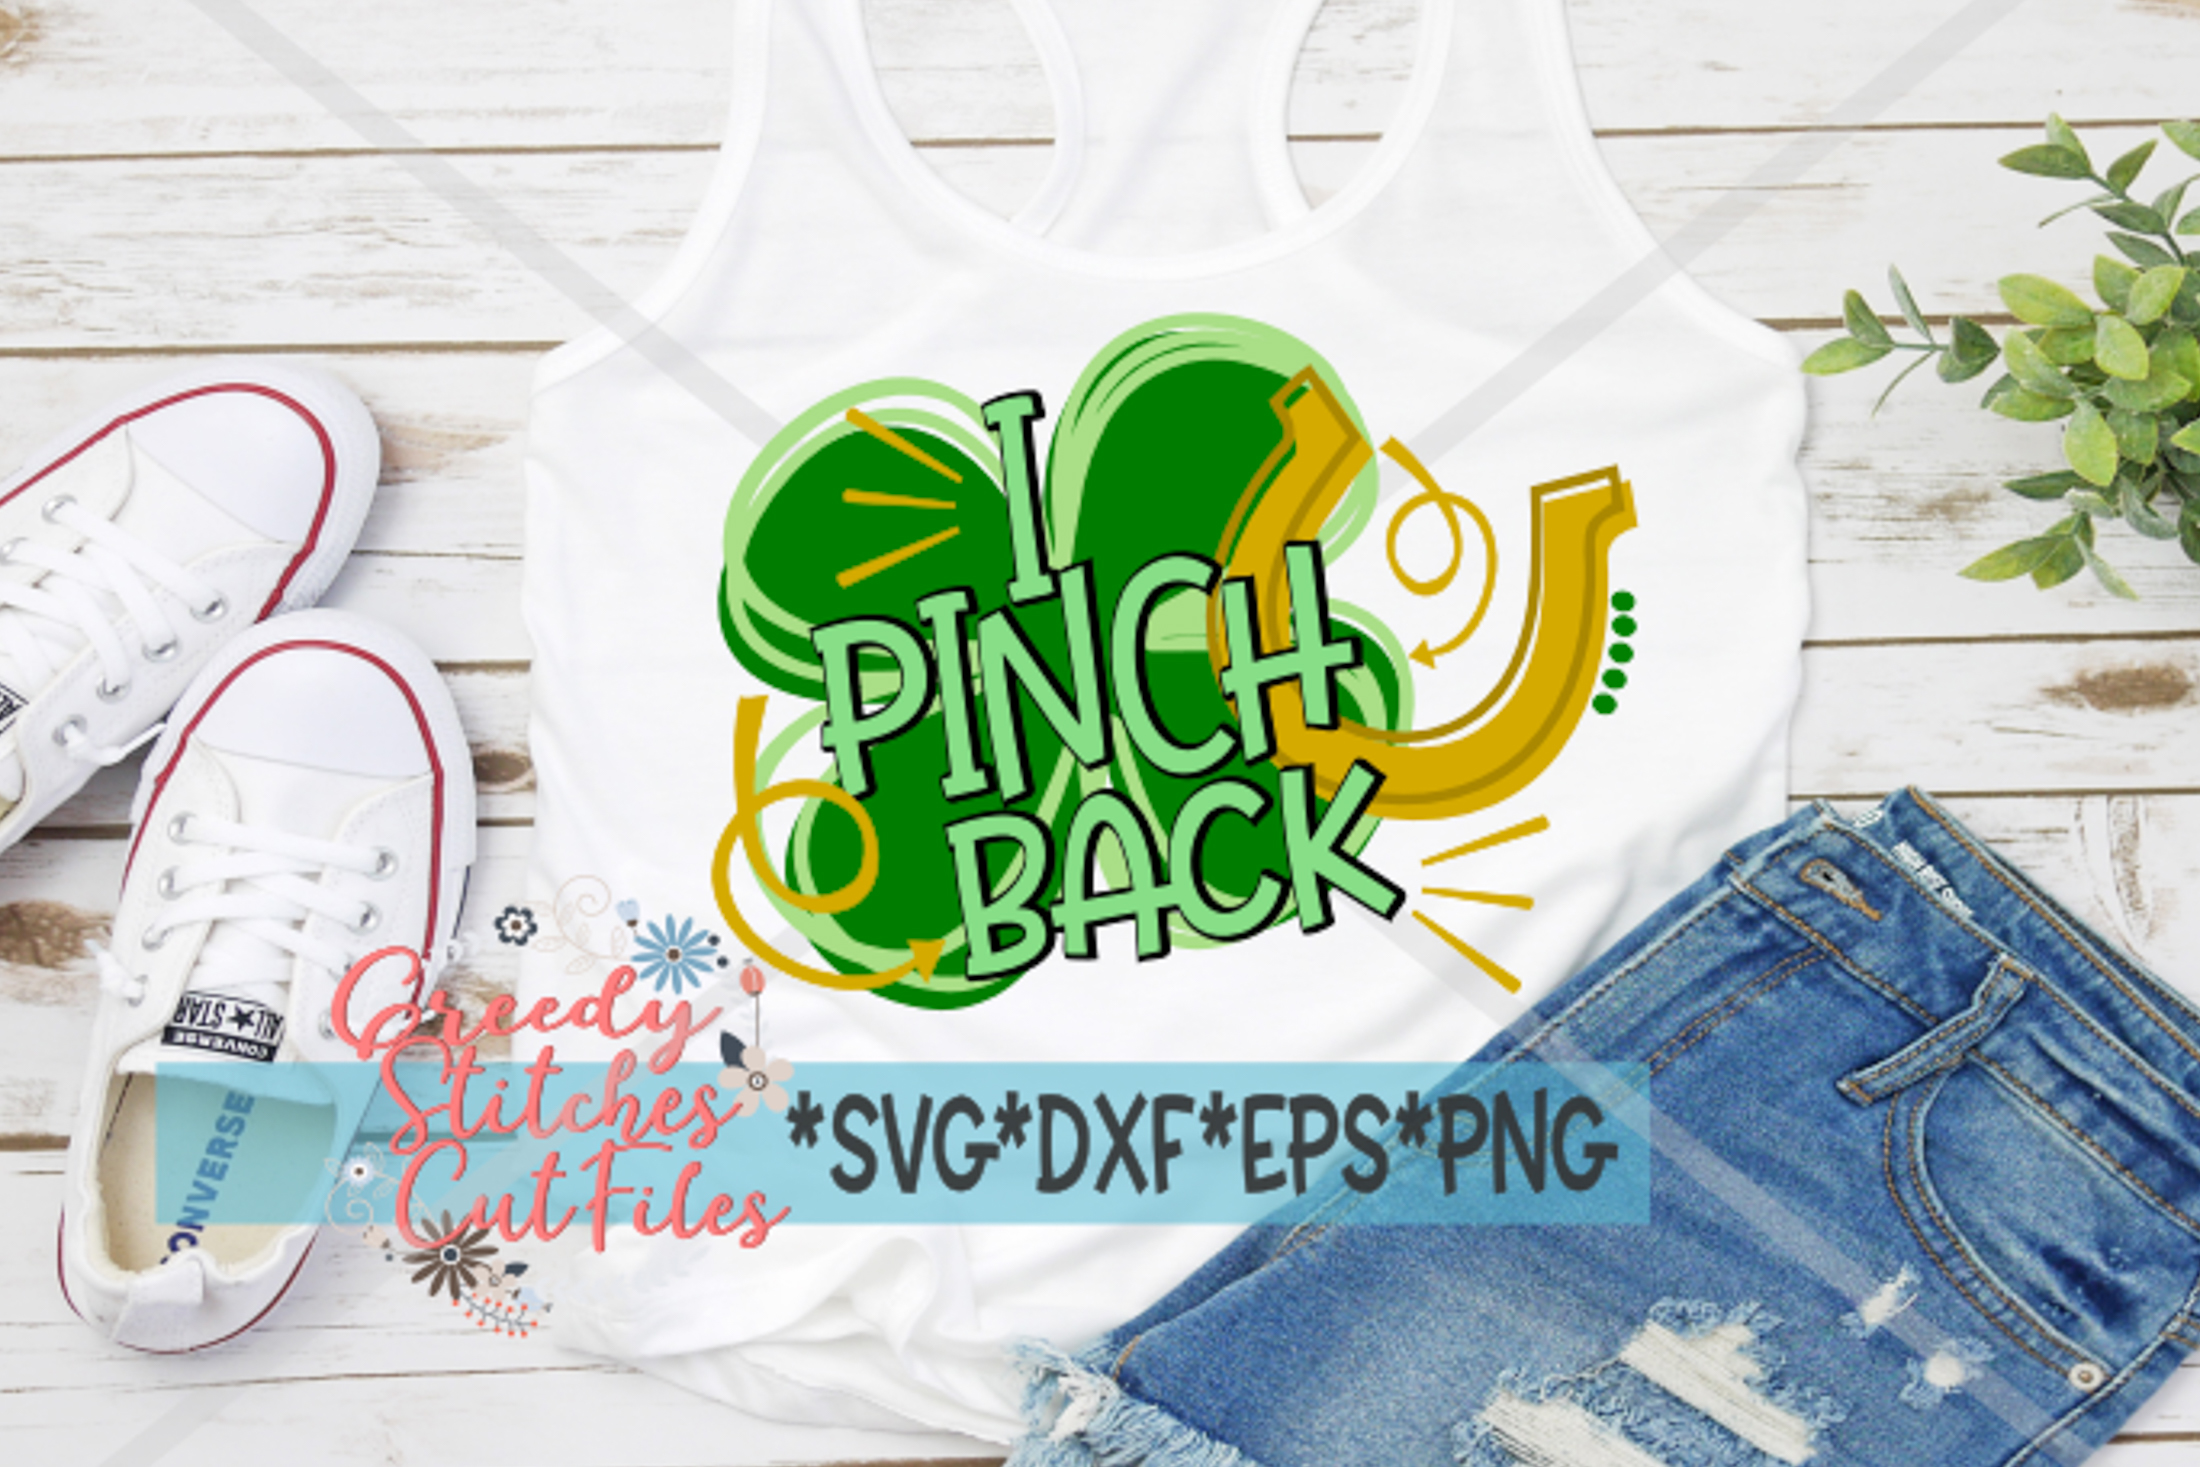 St. Patrick's Day | I Pinch Back SVG DXF EPS PNG example image 2